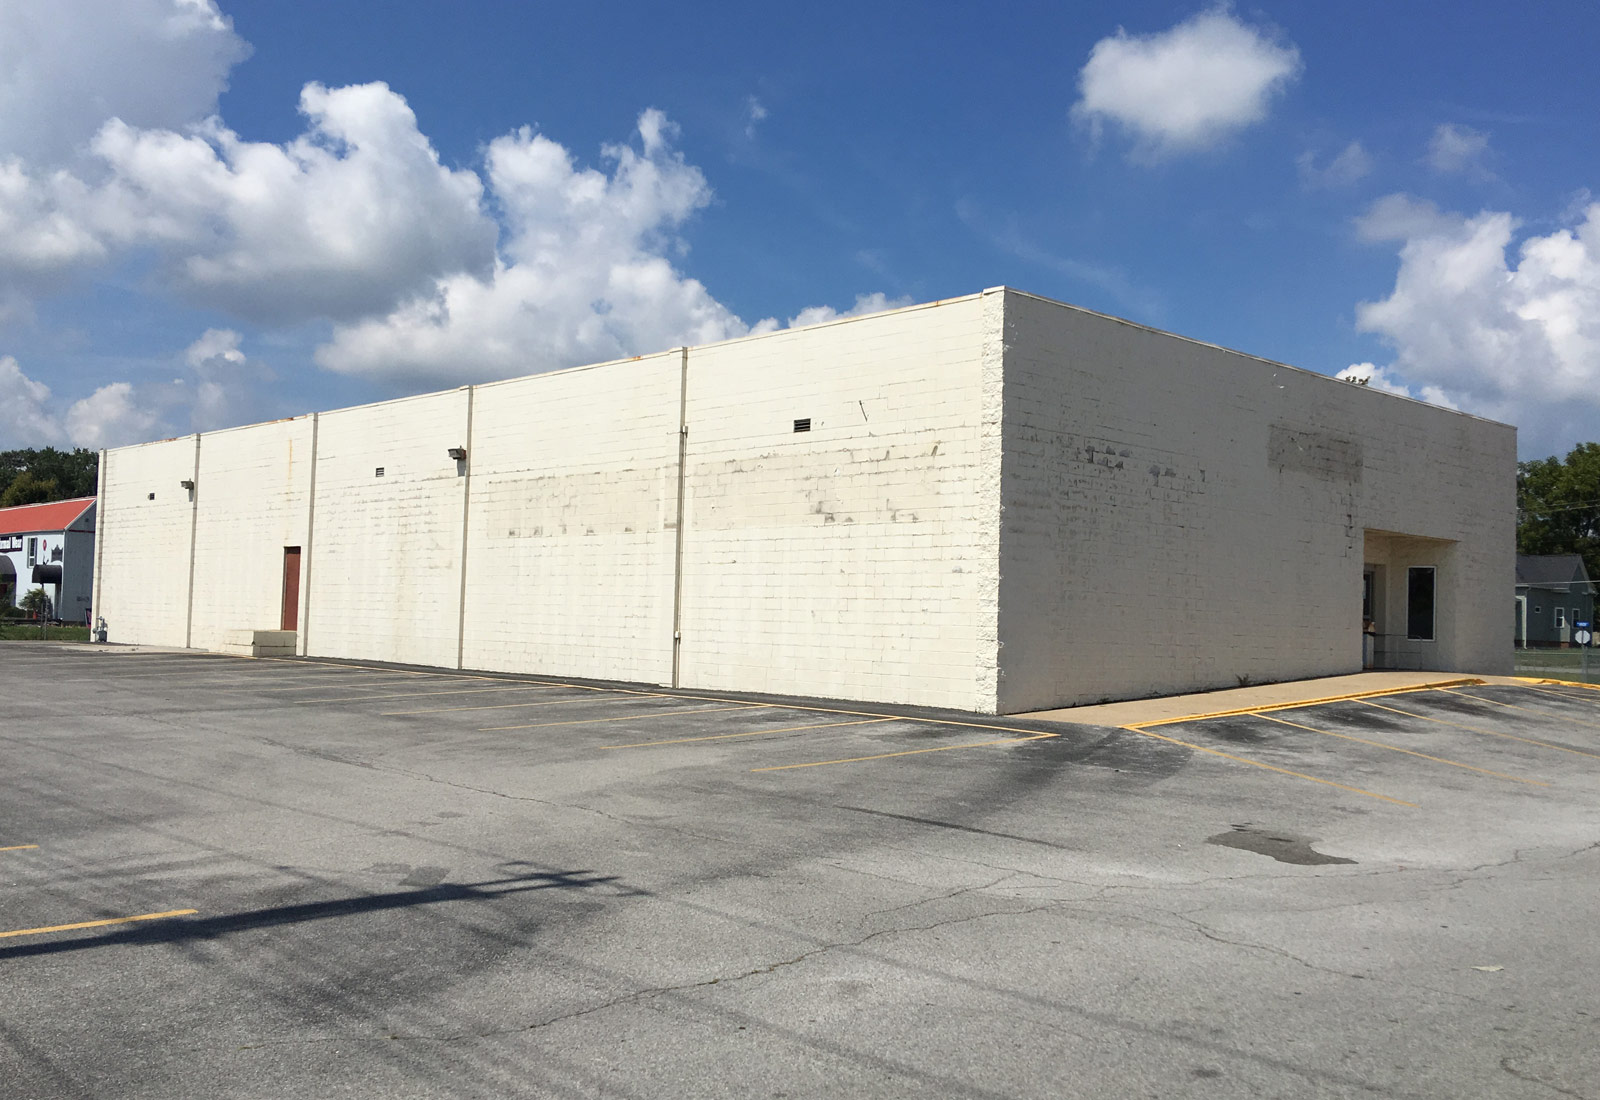 Luckys Liquors Building Before Remodel & Store Design